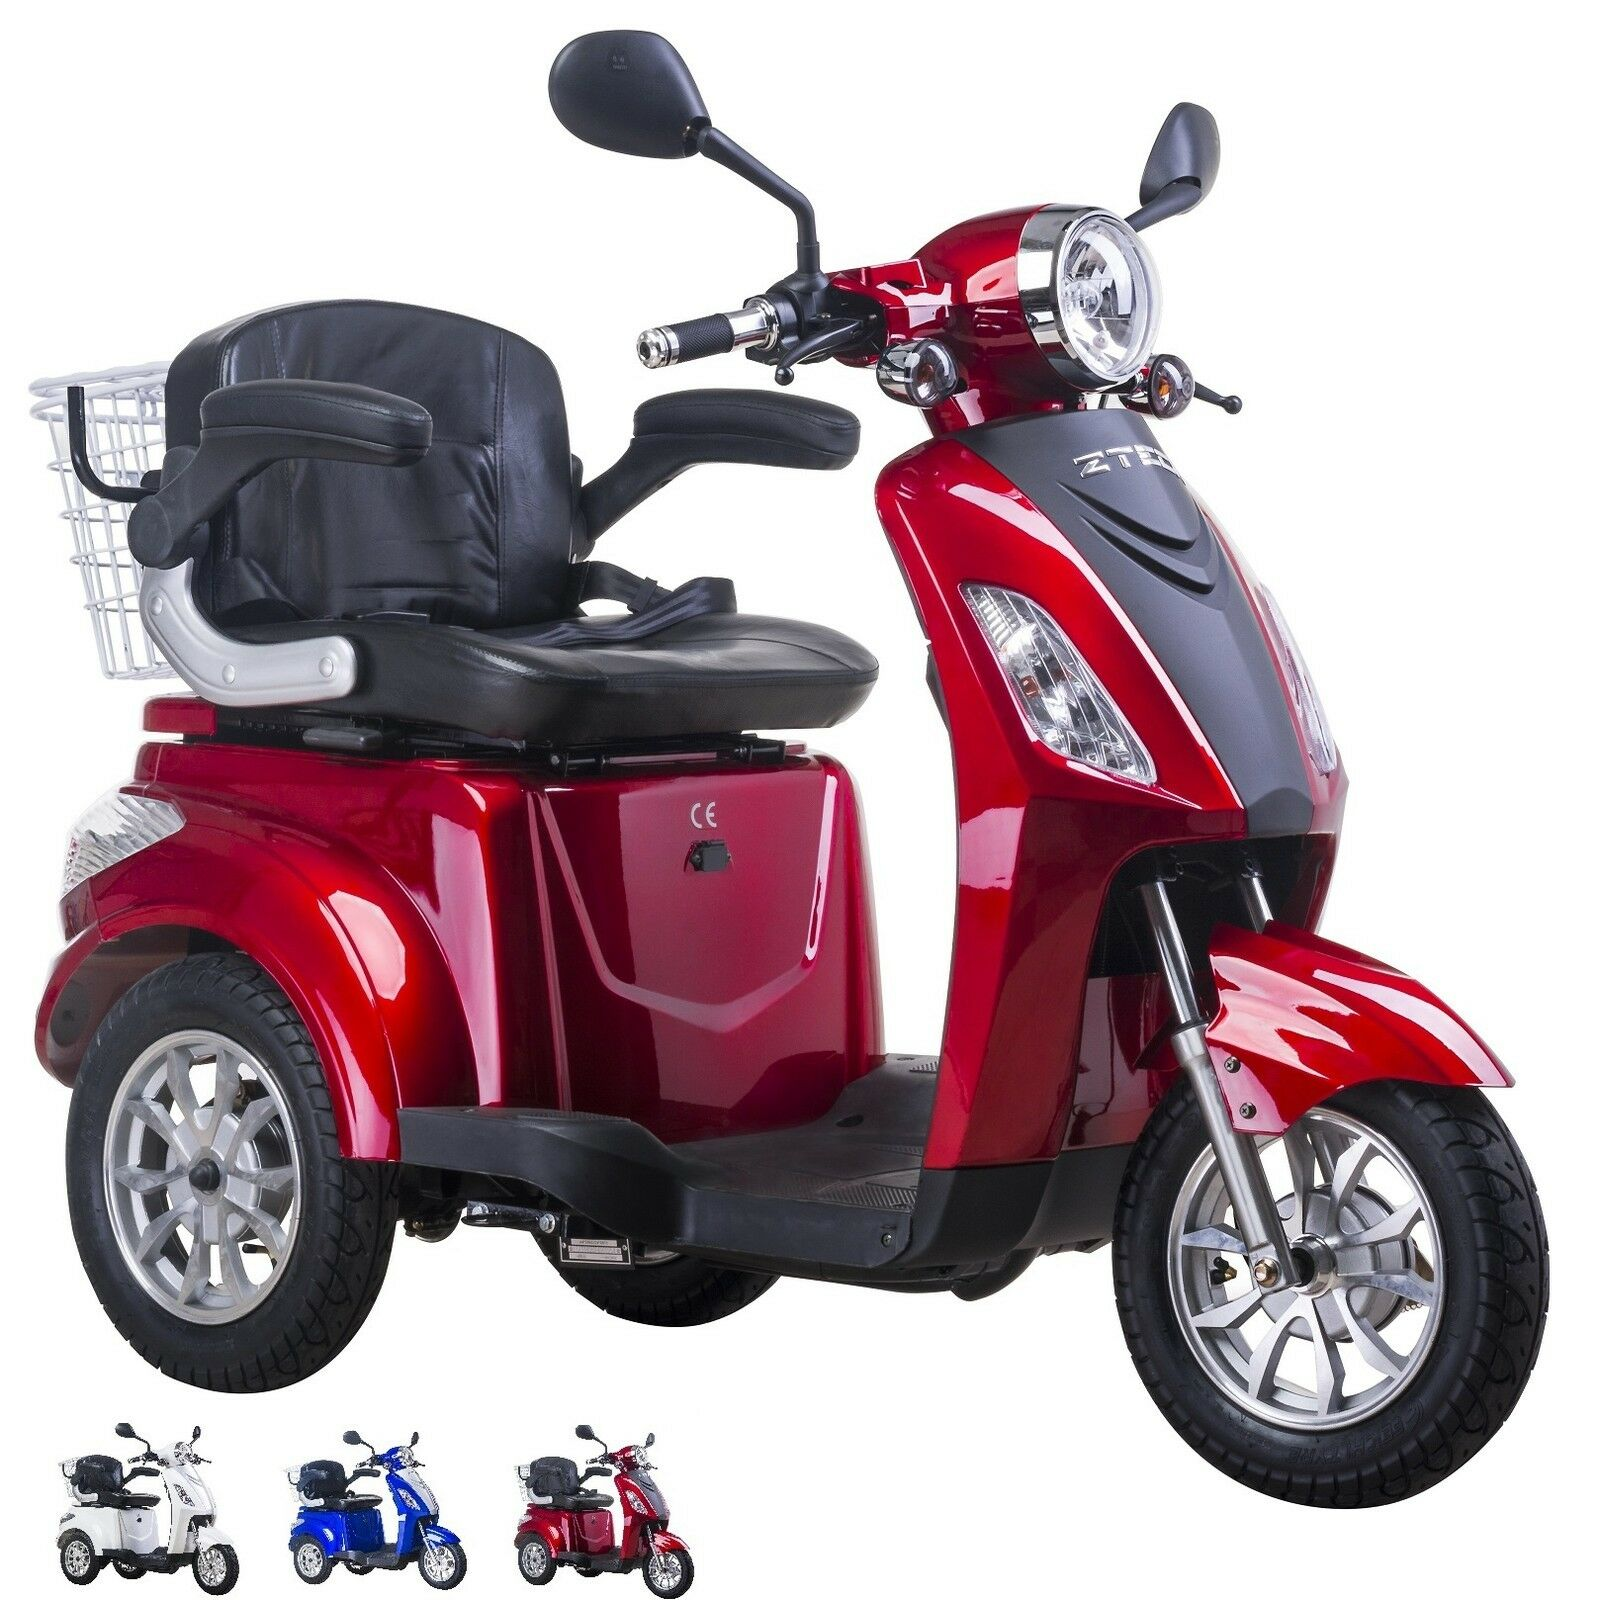 neu 3 fahrbares rot 15 20ah 500w elektrischer scooter elektromobil geschwindigk eur. Black Bedroom Furniture Sets. Home Design Ideas